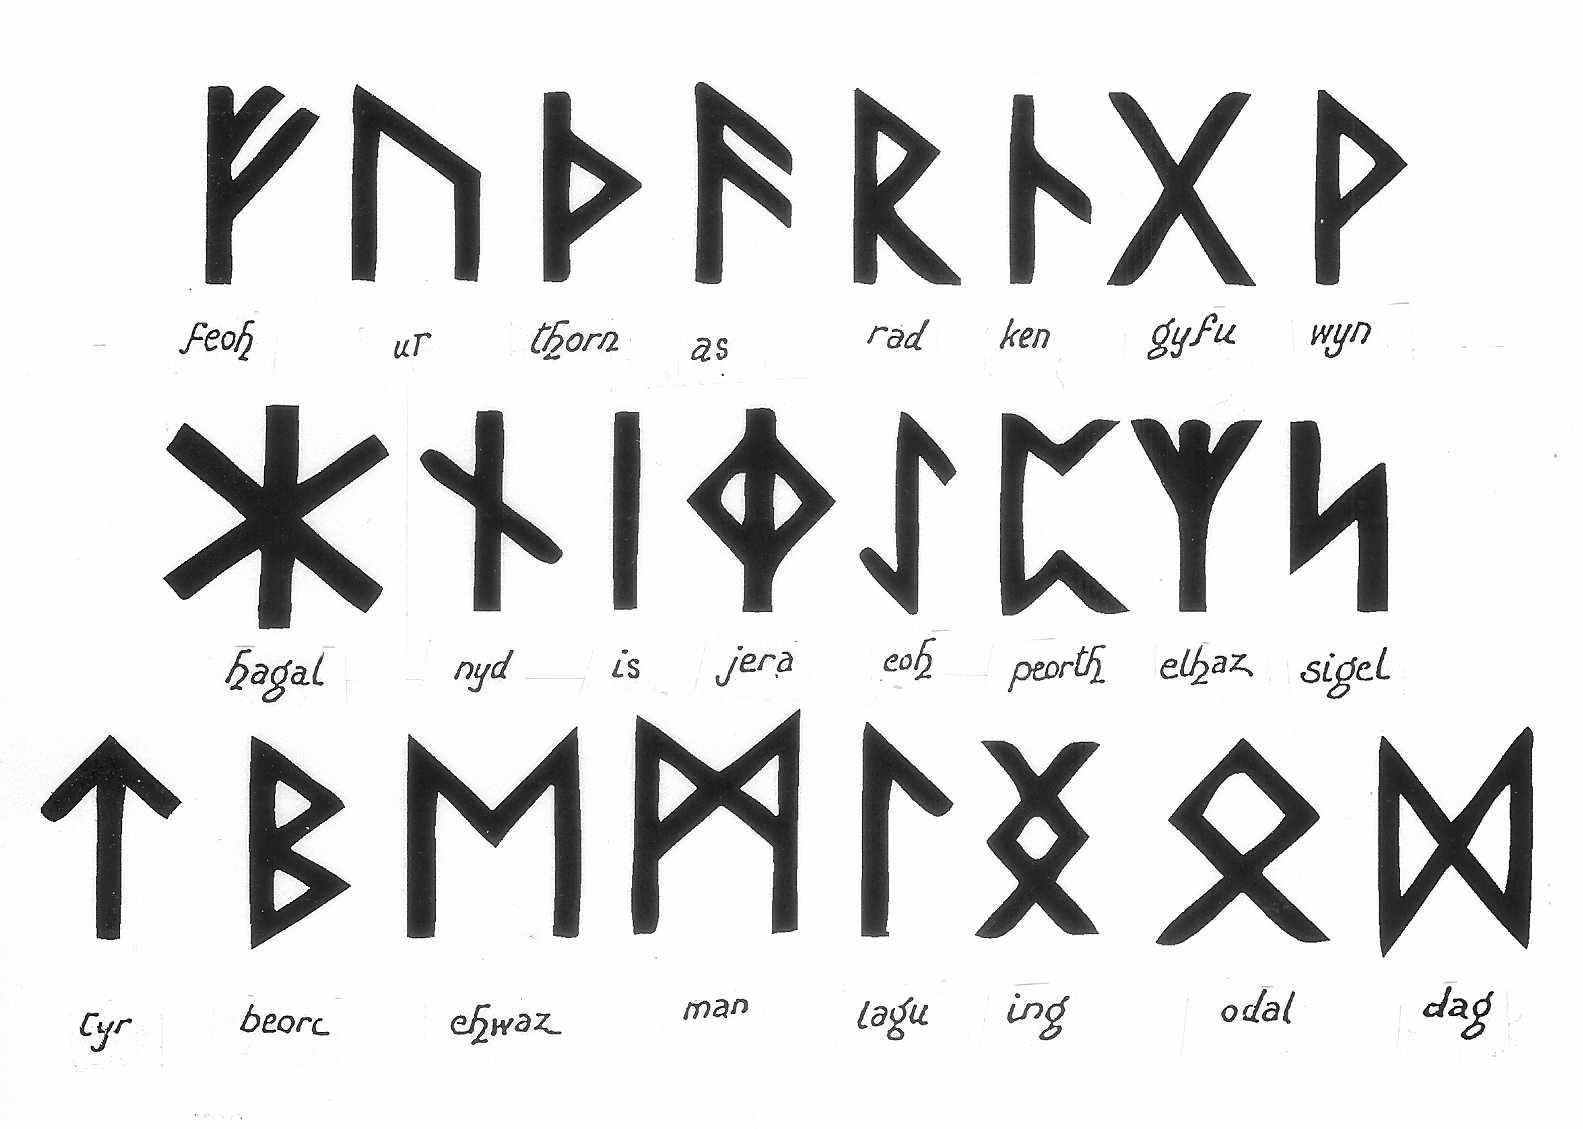 Viking writing system